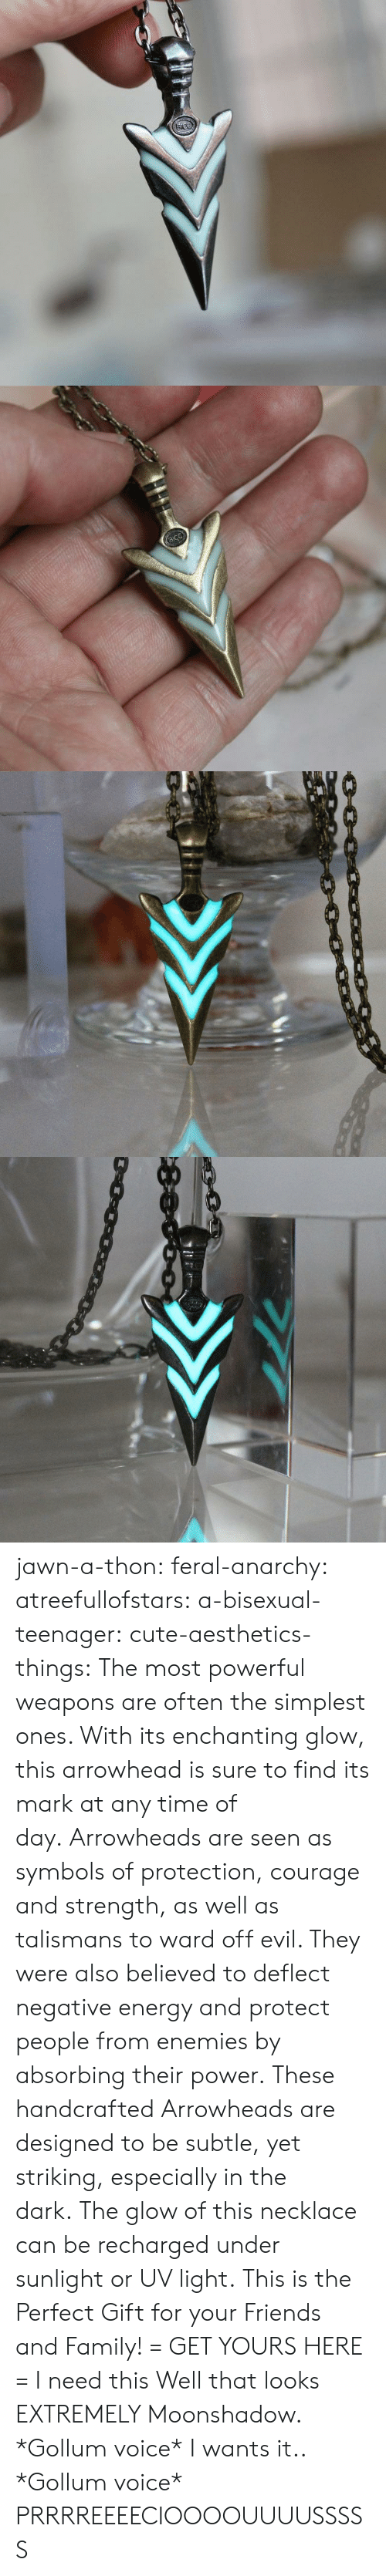 subtle: acc   0000c0 jawn-a-thon:  feral-anarchy:  atreefullofstars:   a-bisexual-teenager:  cute-aesthetics-things:  The most powerful weapons are often the simplest ones. With its enchanting glow, this arrowhead is sure to find its mark at any time of day. Arrowheads are seen as symbols of protection, courage and strength, as well as talismans to ward off evil. They were also believed to deflect negative energy and protect people from enemies by absorbing their power. These handcrafted Arrowheads are designed to be subtle, yet striking, especially in the dark. The glow of this necklace can be recharged under sunlight or UV light. This is the Perfect Gift for your Friends and Family! = GET YOURS HERE =   I need this  Well that looks EXTREMELY Moonshadow.   *Gollum voice* I wants it..  *Gollum voice* PRRRREEEECIOOOOUUUUSSSSS